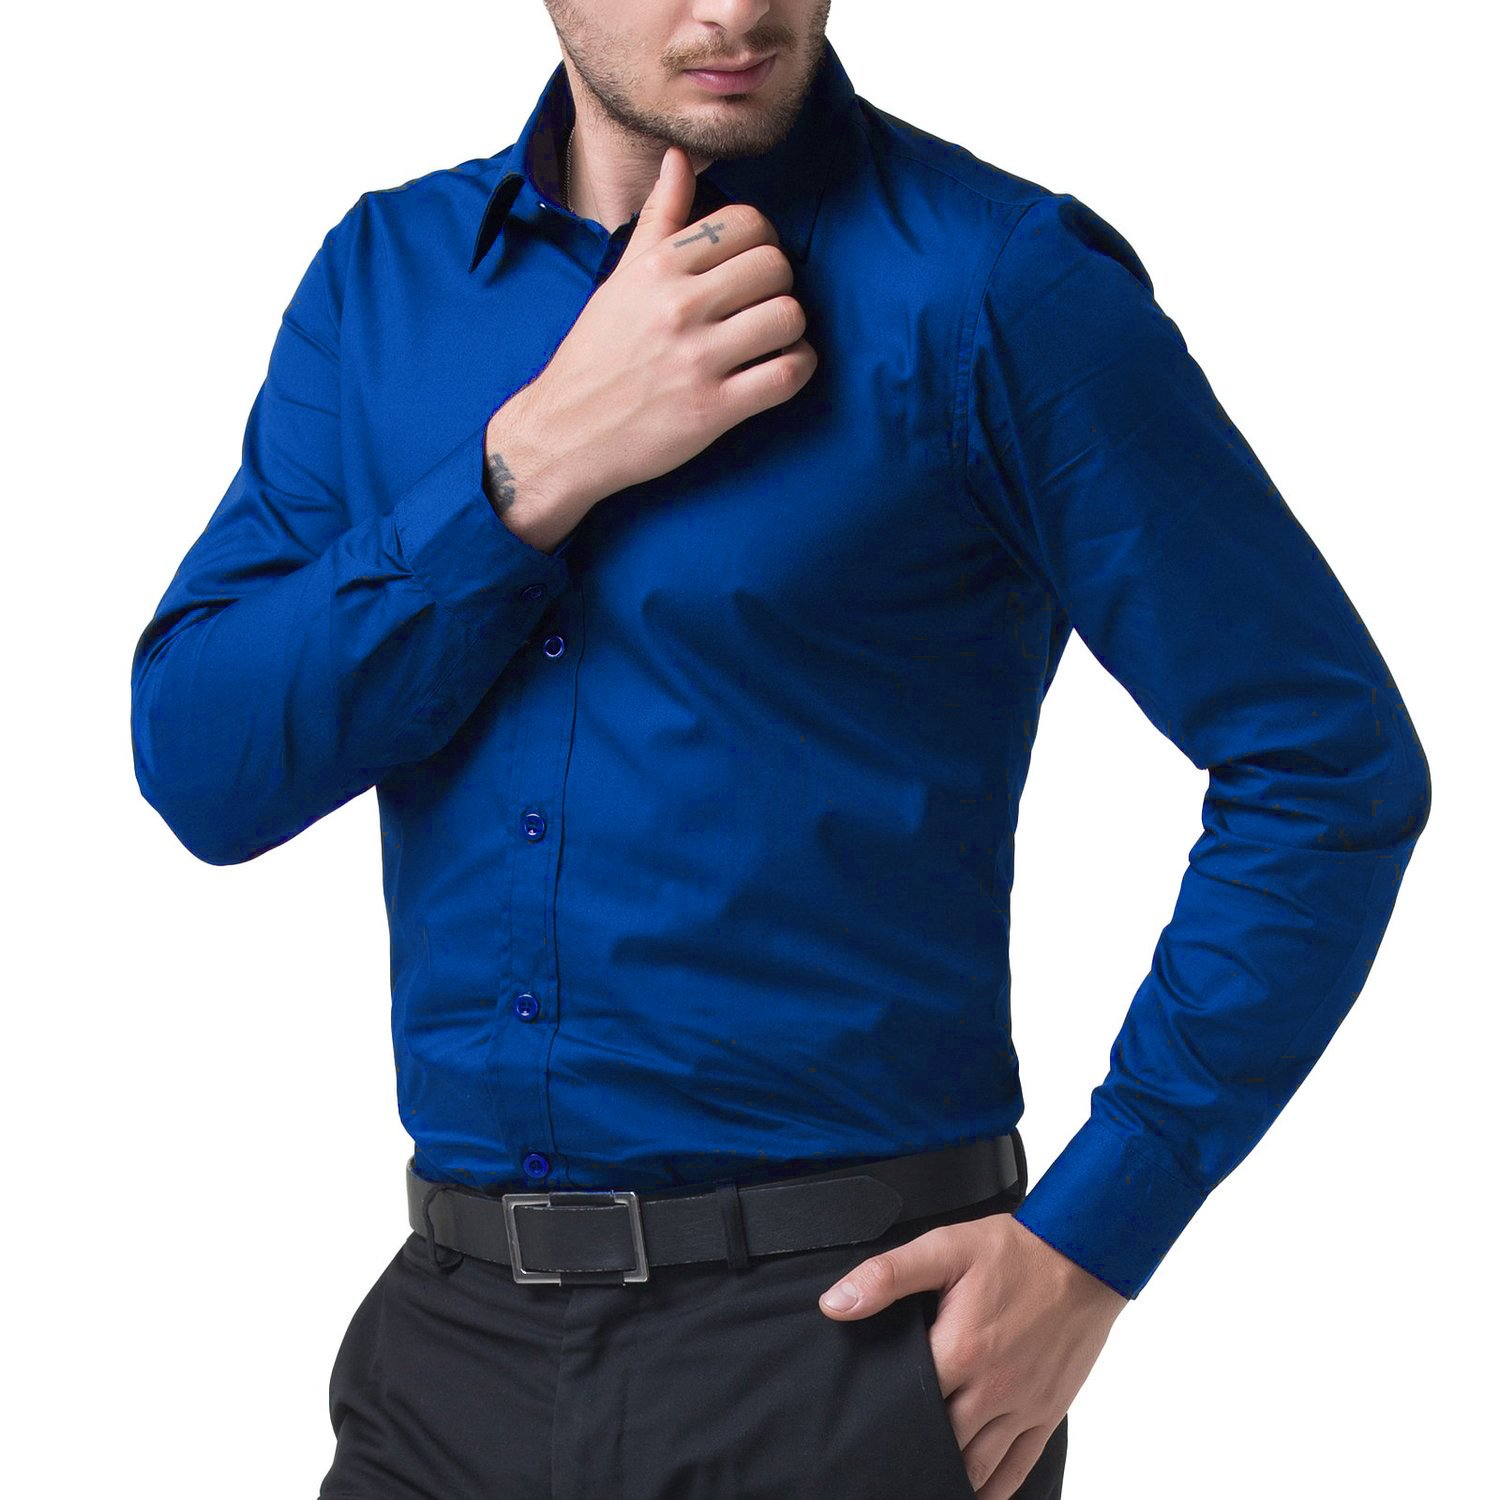 02d0401c5 BEING FAB Men's Solid 100% Cotton Regular Fit Casual Royal Blue Shirt:  Amazon.in: Clothing & Accessories